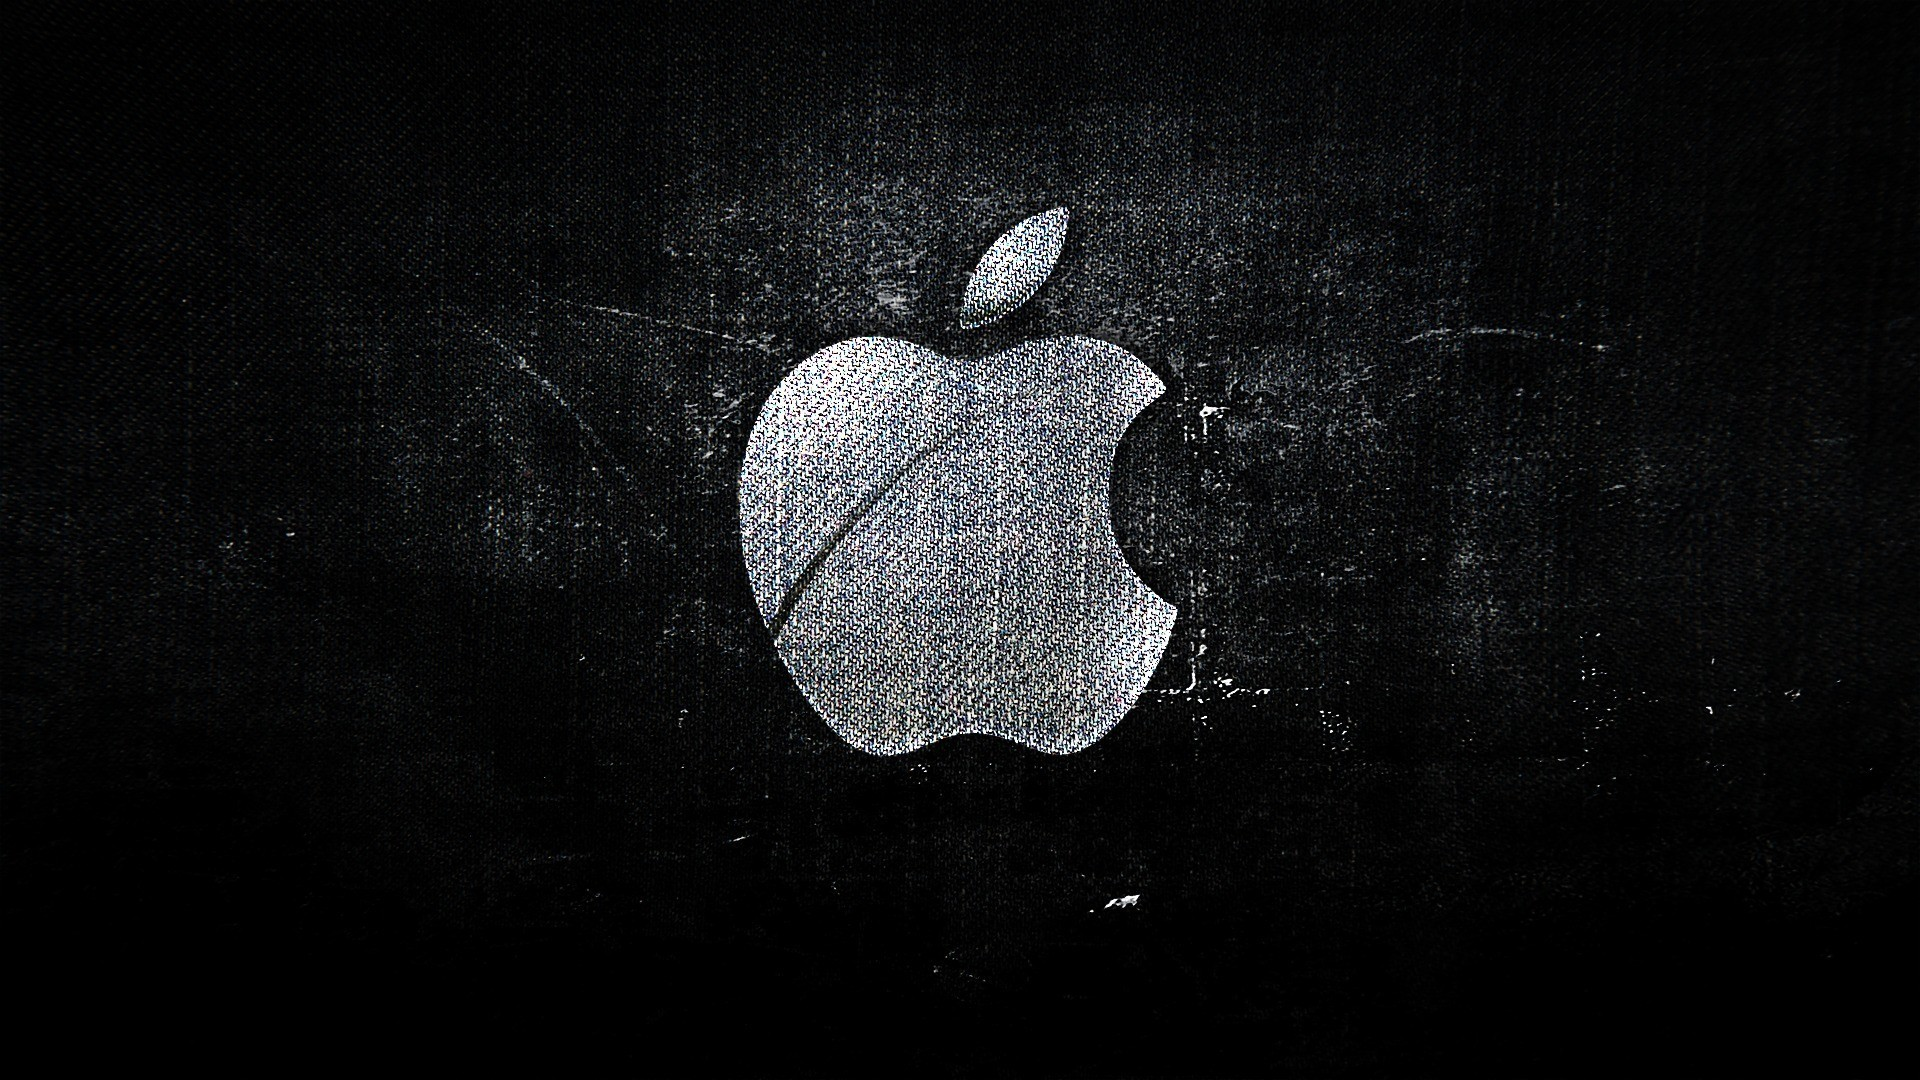 Macbook Air Wallpaper